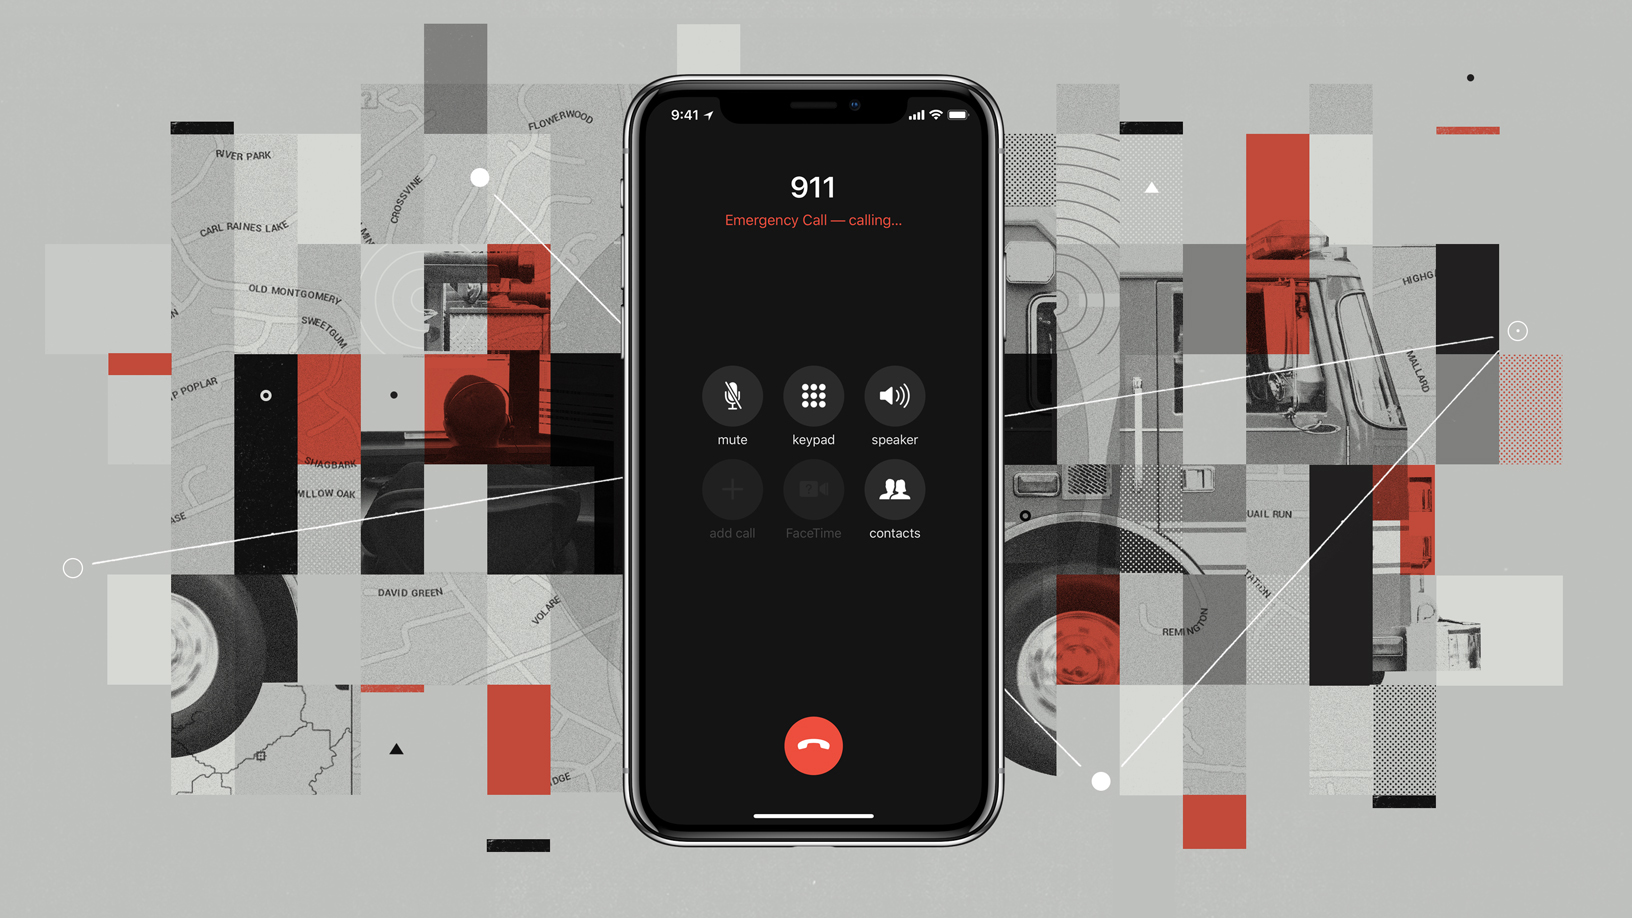 IOS 12 Will Share Precise Location Data For 911 Calls